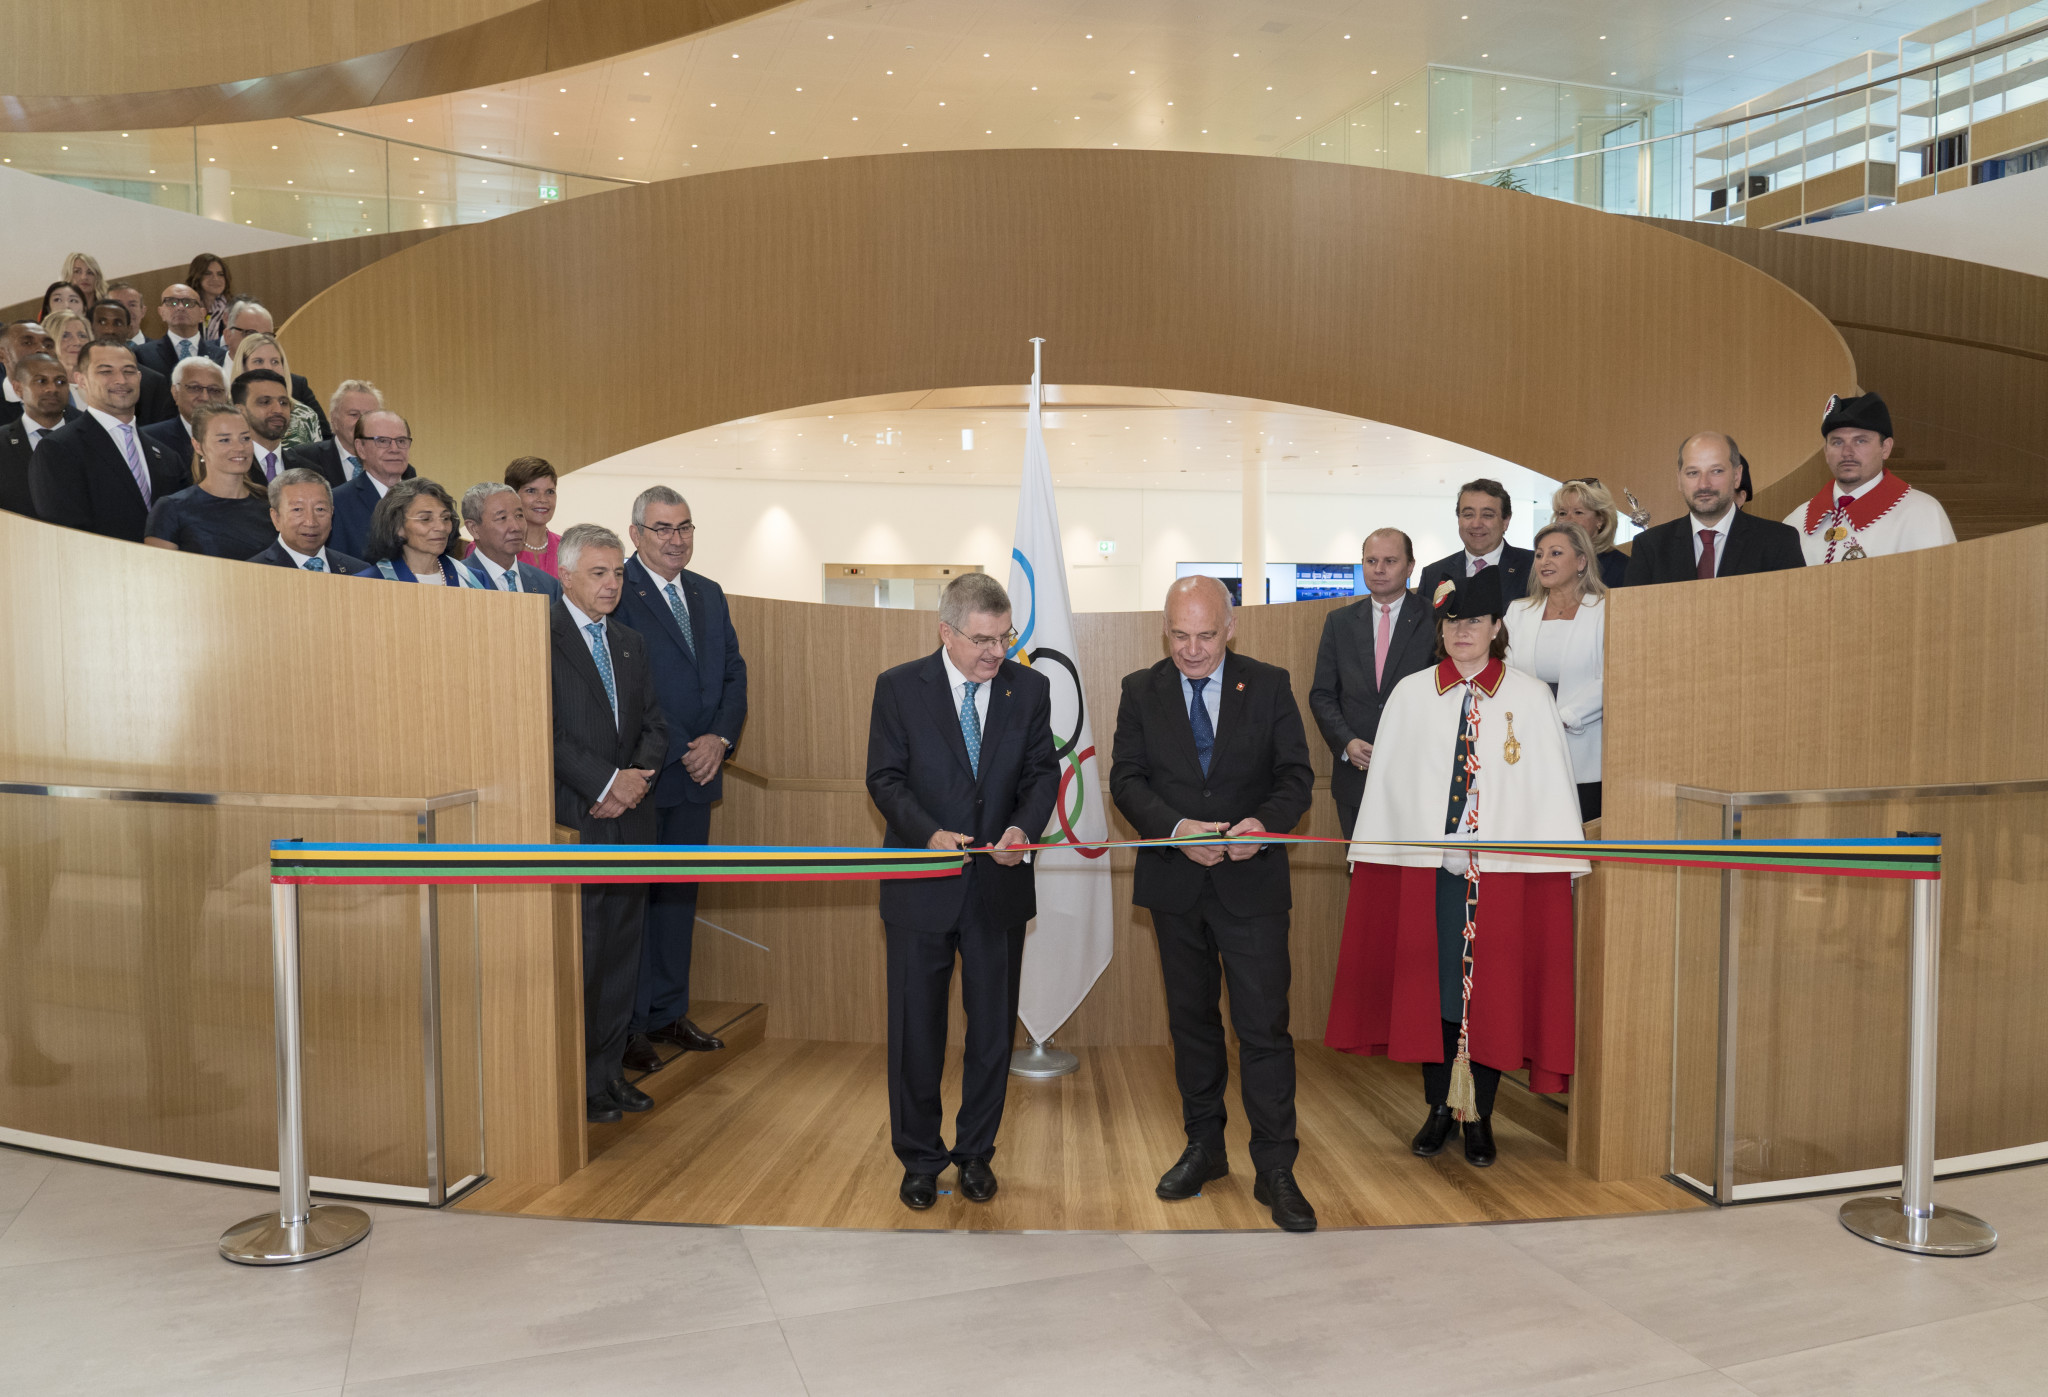 Olympic House was opened in Lausanne on Sunday by IOC President Thomas Bach and Swiss President Ueli Maurer at a special ceremony attended by guests from across the world ©IOC